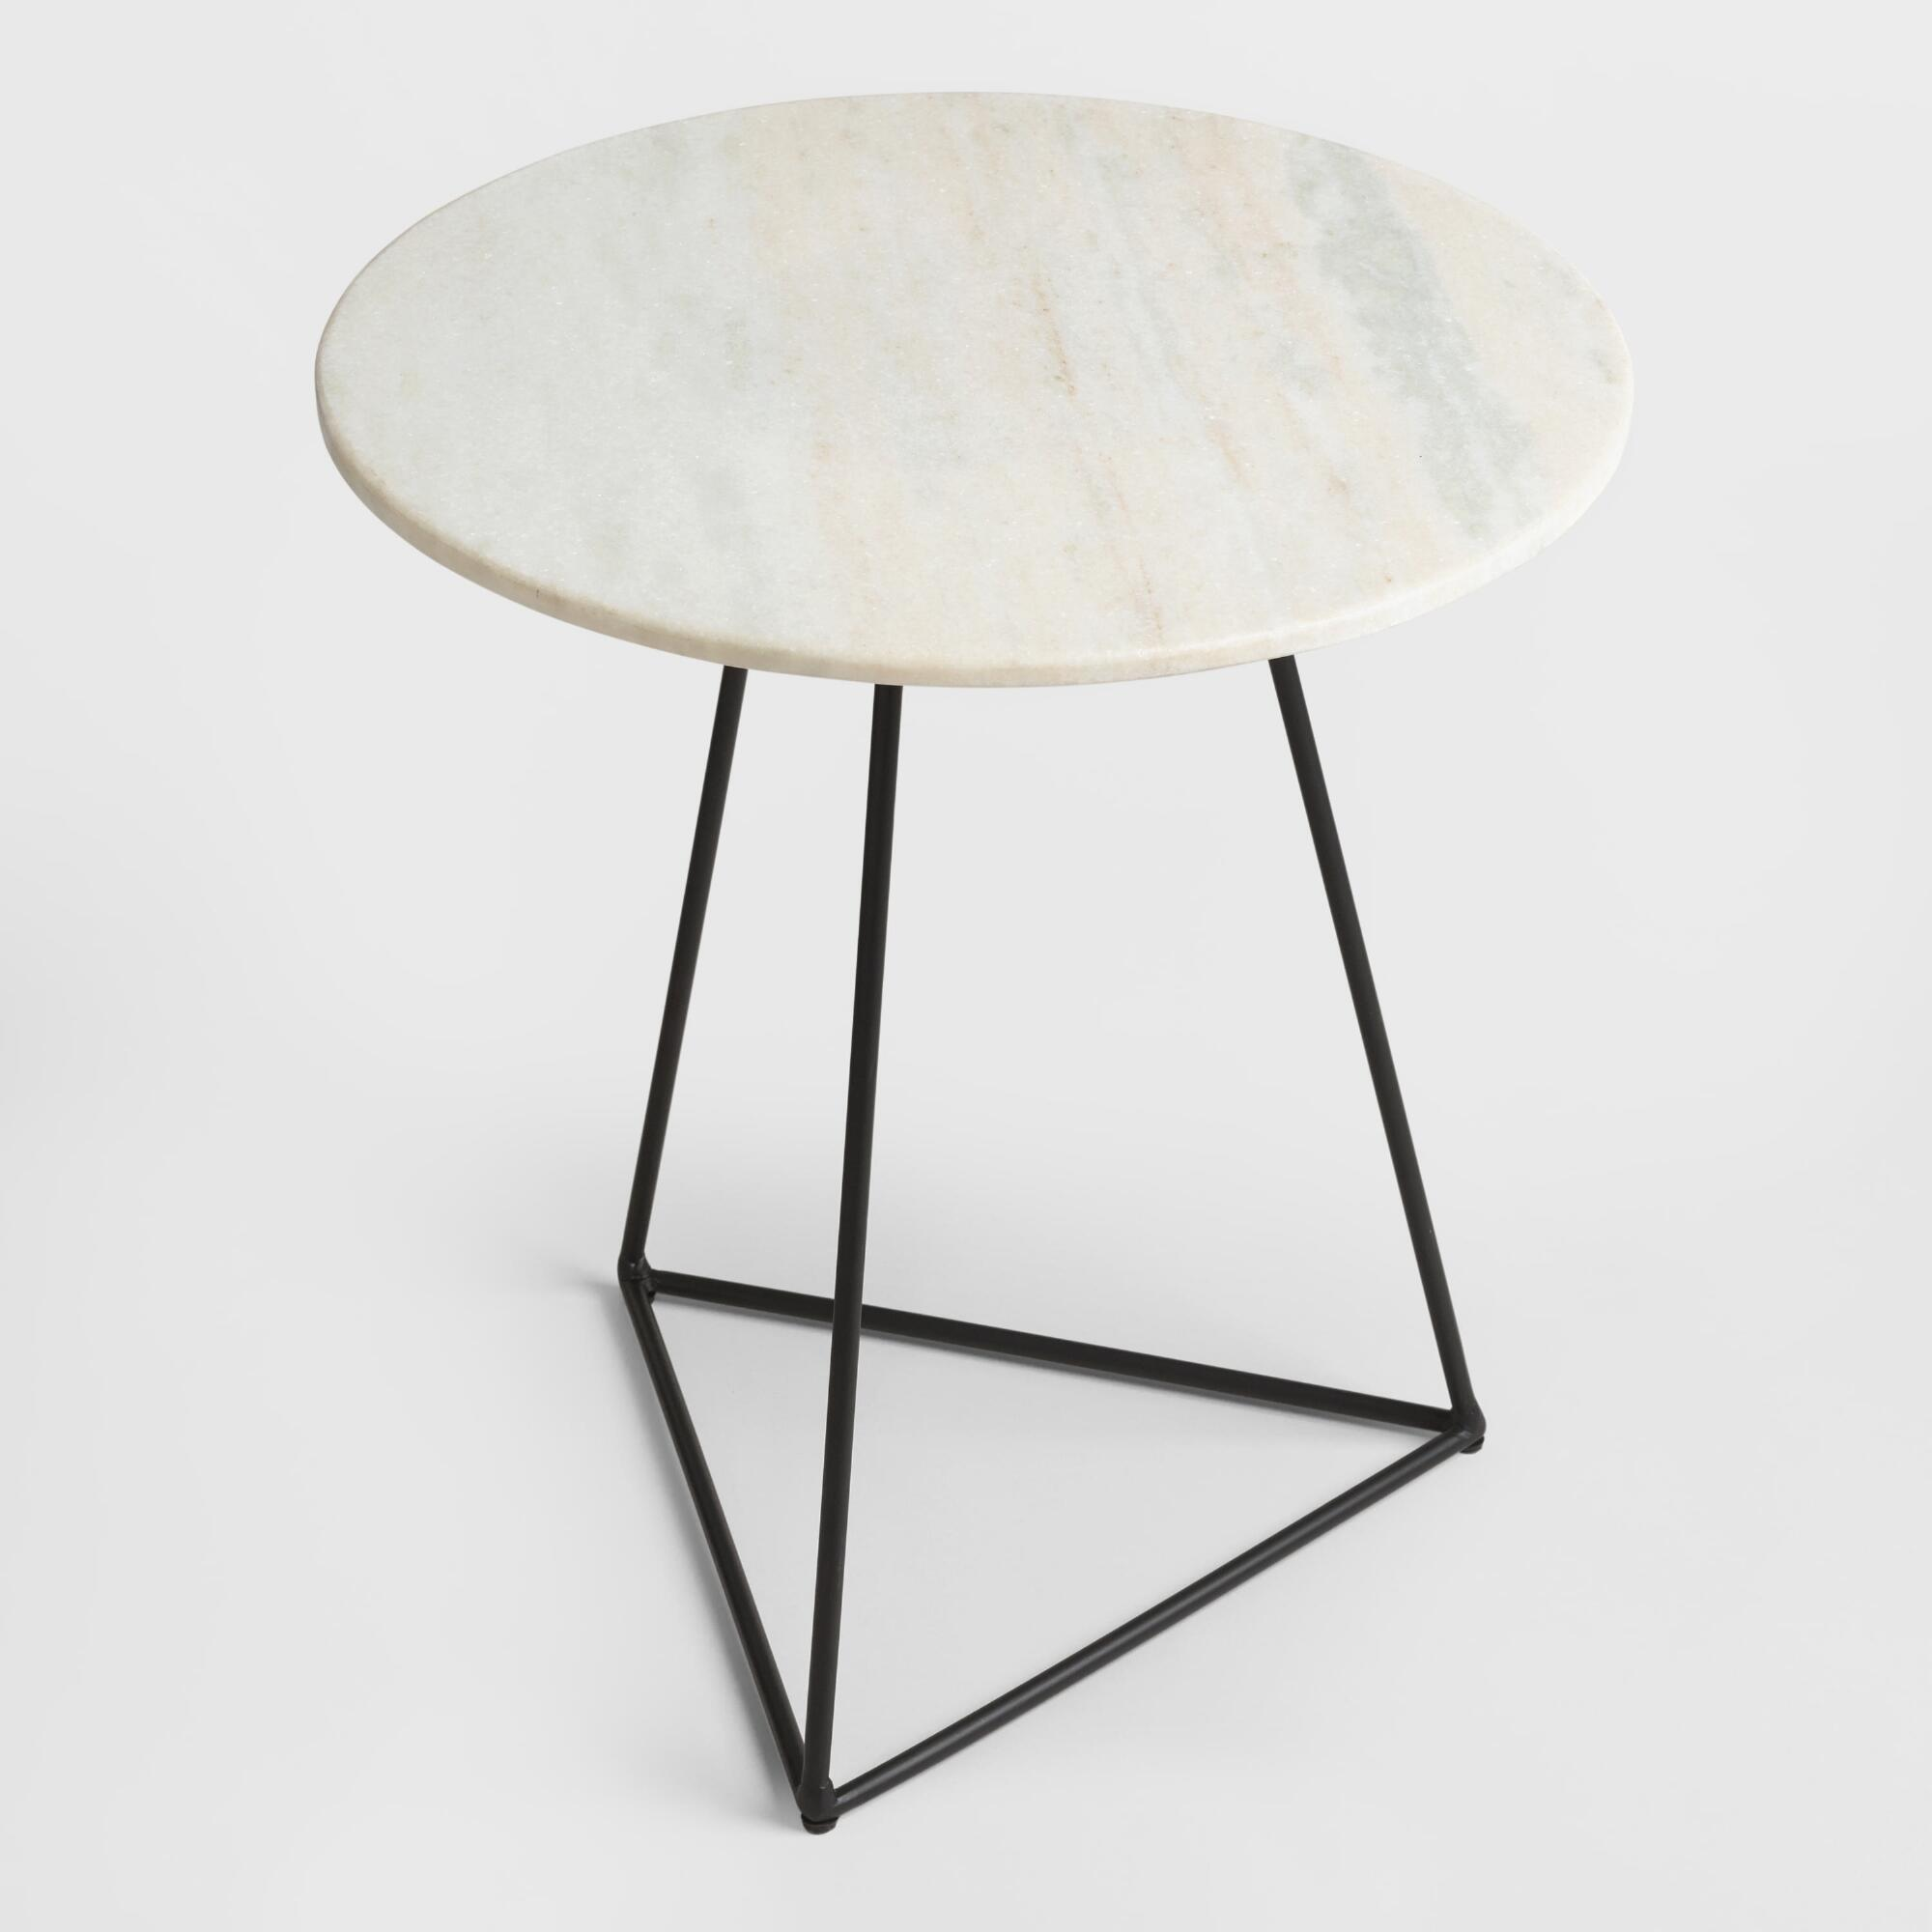 handcrafted skilled artisans our versatile side table white accent tables living room features natural marble top alabaster with gray undertones and subtle gold home decor